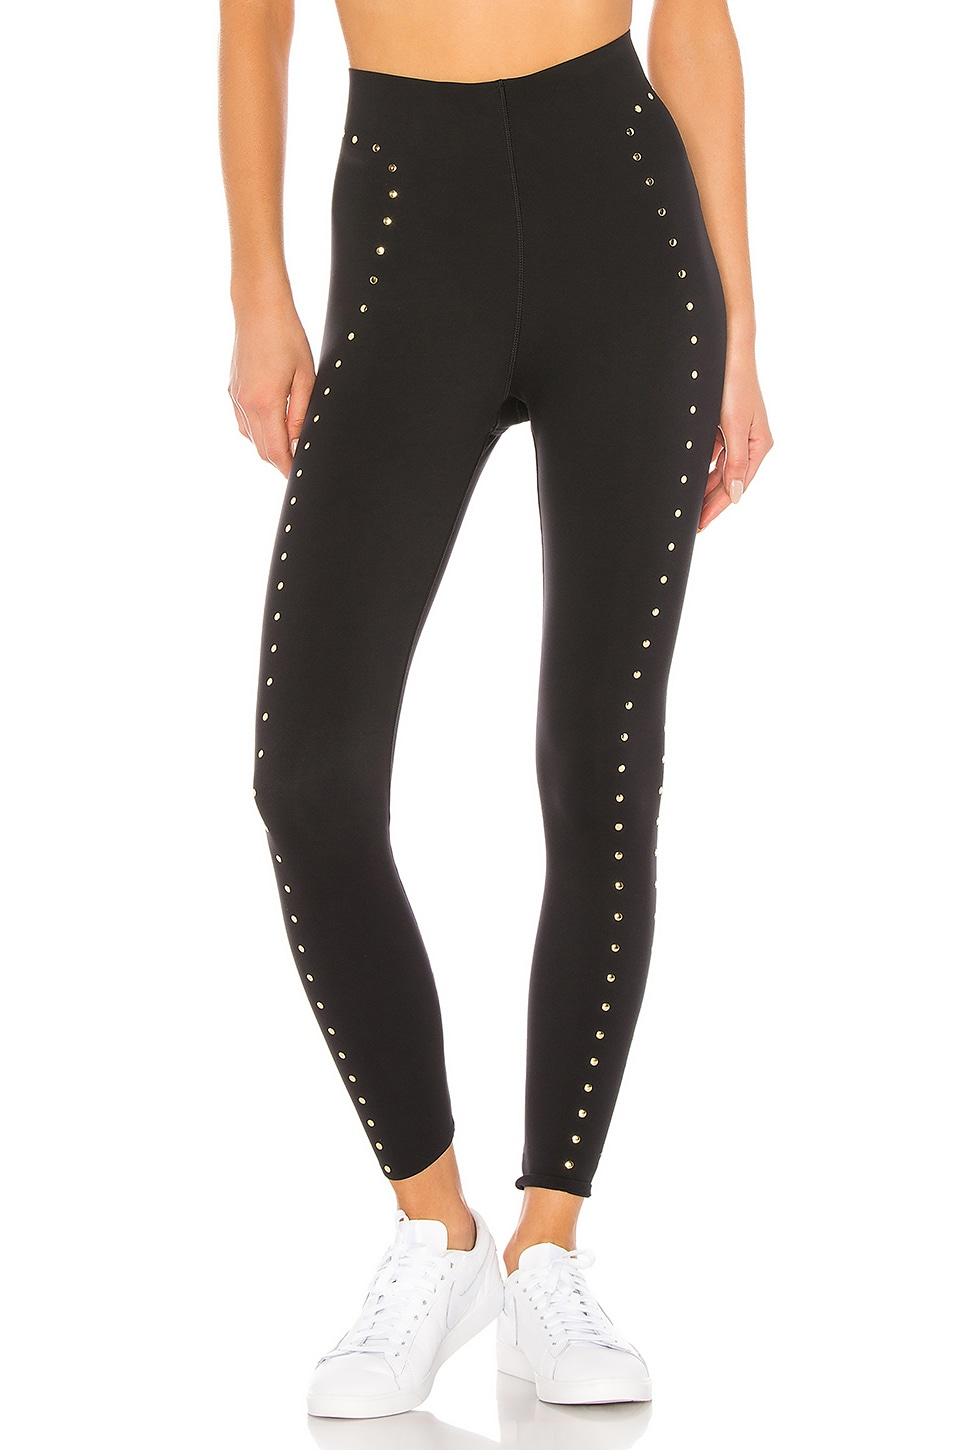 Nike NK Boutique Stud Tight in Black & Metallic Gold